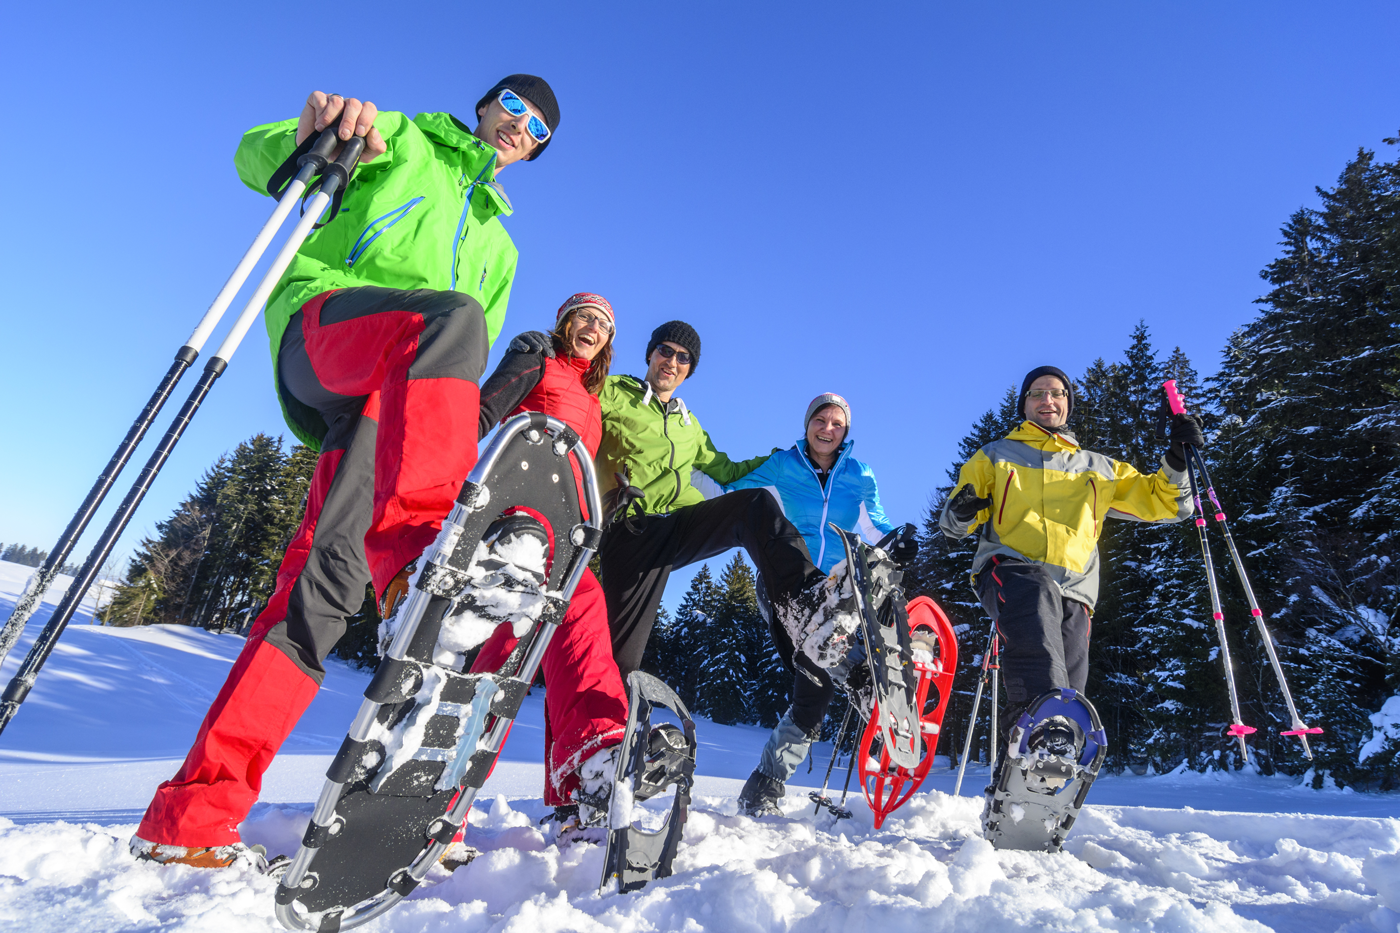 Snowshoeing is just one of the winter activities at Big White Ski Resort when you Ski and Stay at the Comfort Suites, one of the Choice hotels in Kelowna.